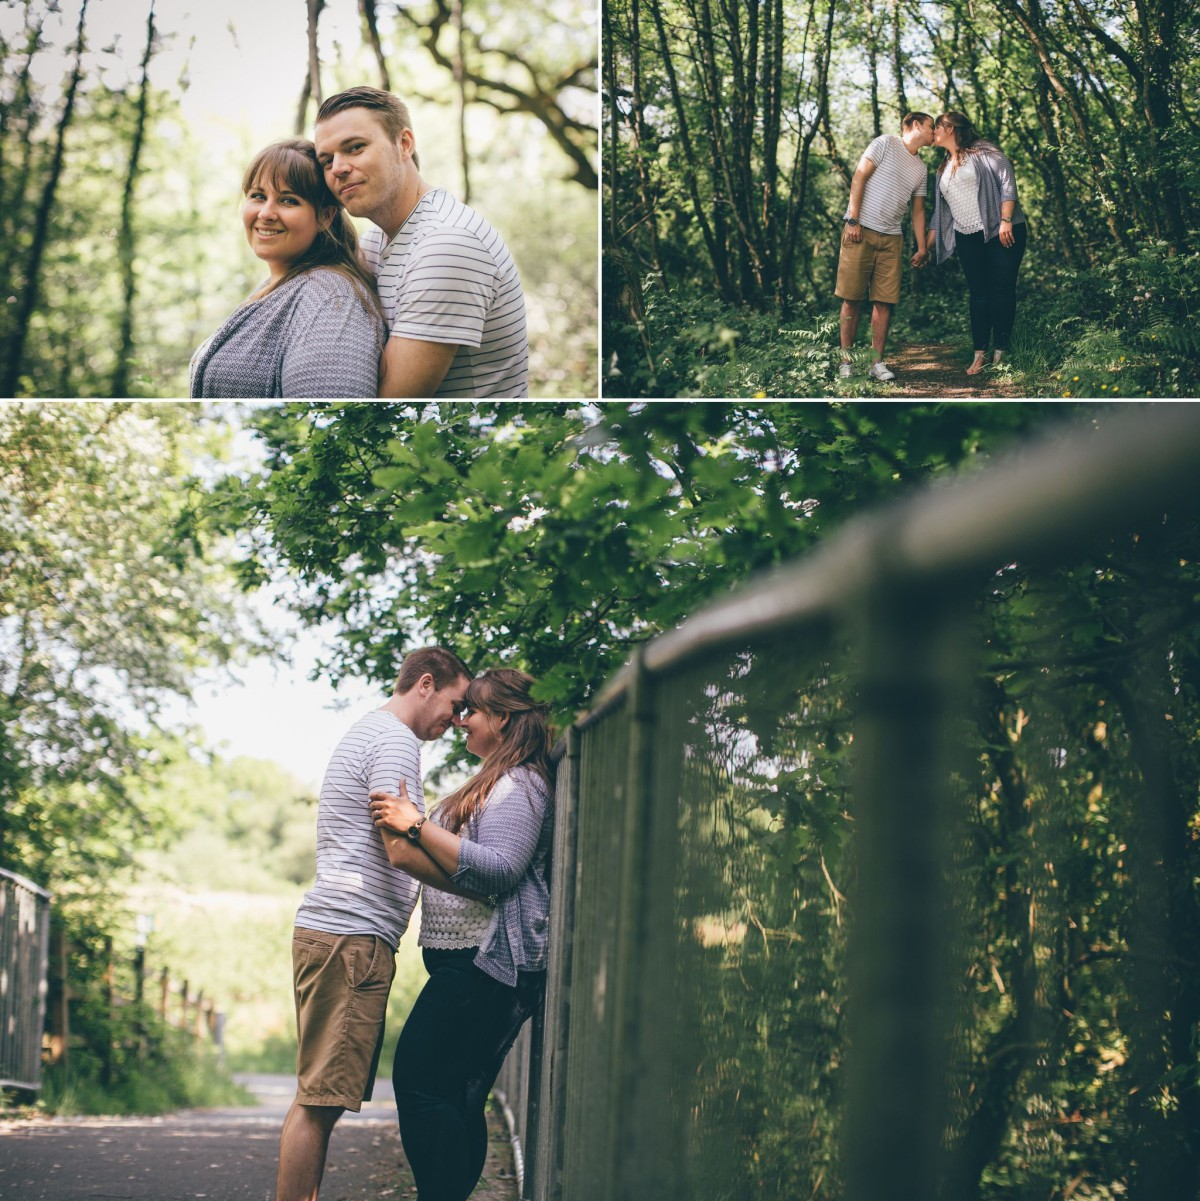 laura_sam_engagement_shoot_tonteg_miskin_manor_wedding_rachel_lambert_photography_ 2